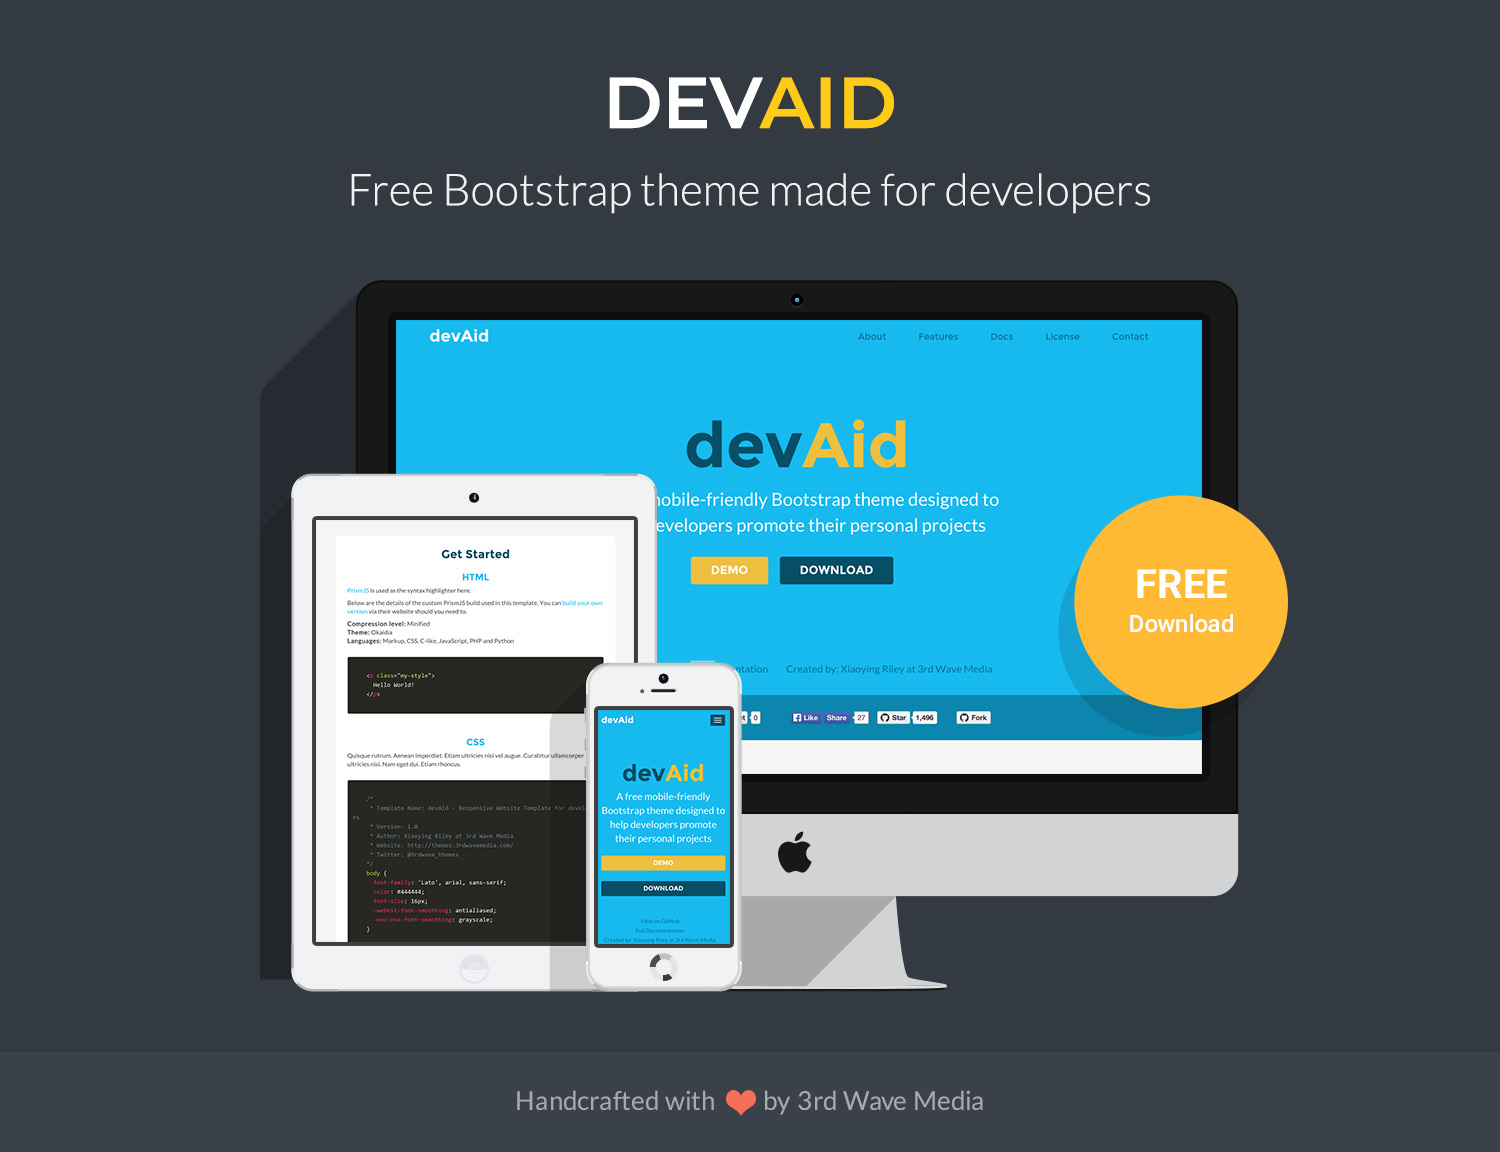 Free-Bootstrap-Theme-for-Developers-devaid